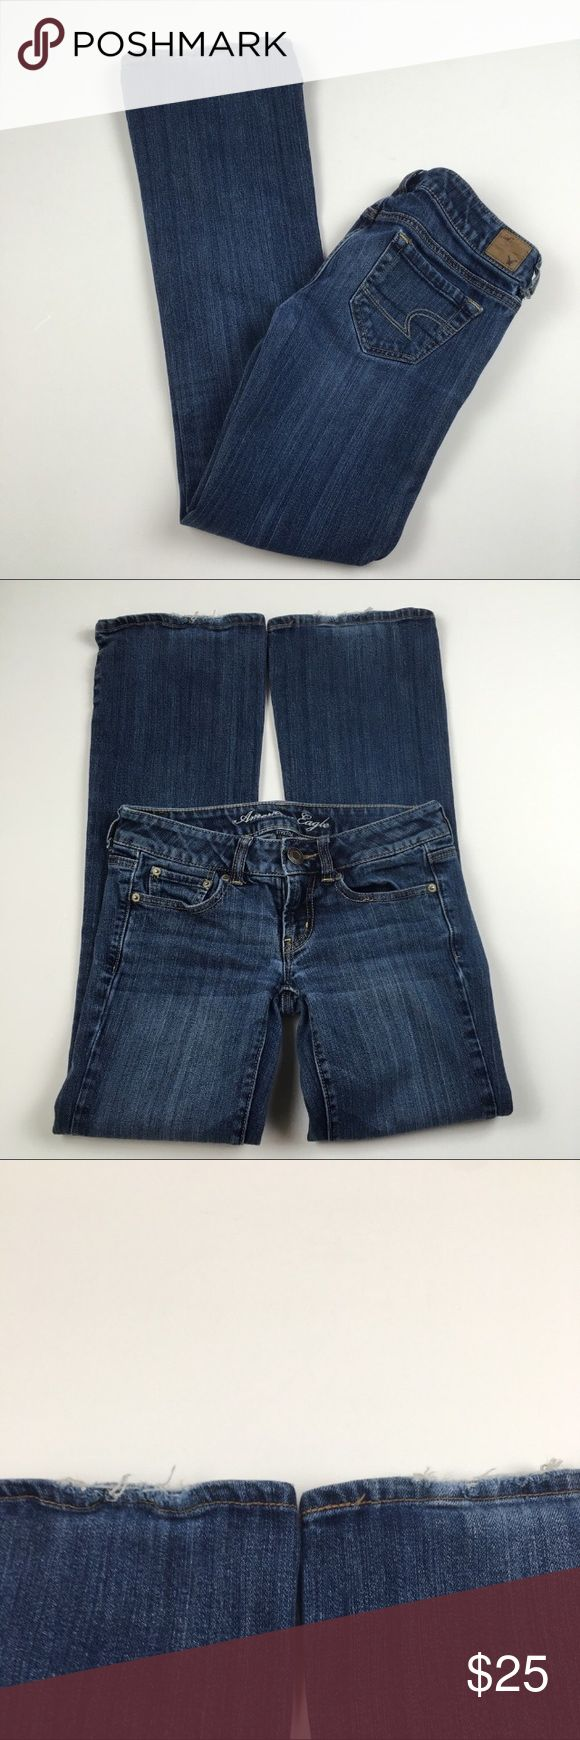 """American Eagle Favorite Boyfriend Jeans Size 0 Great condition. Some wear on bottom hem. Confirm with photos. Clean and comes from smoke free home. Questions welcomed. Approx. measurements: Waist: 14"""" across Inseam: 29.75"""" American Eagle Outfitters Jeans Boyfriend"""